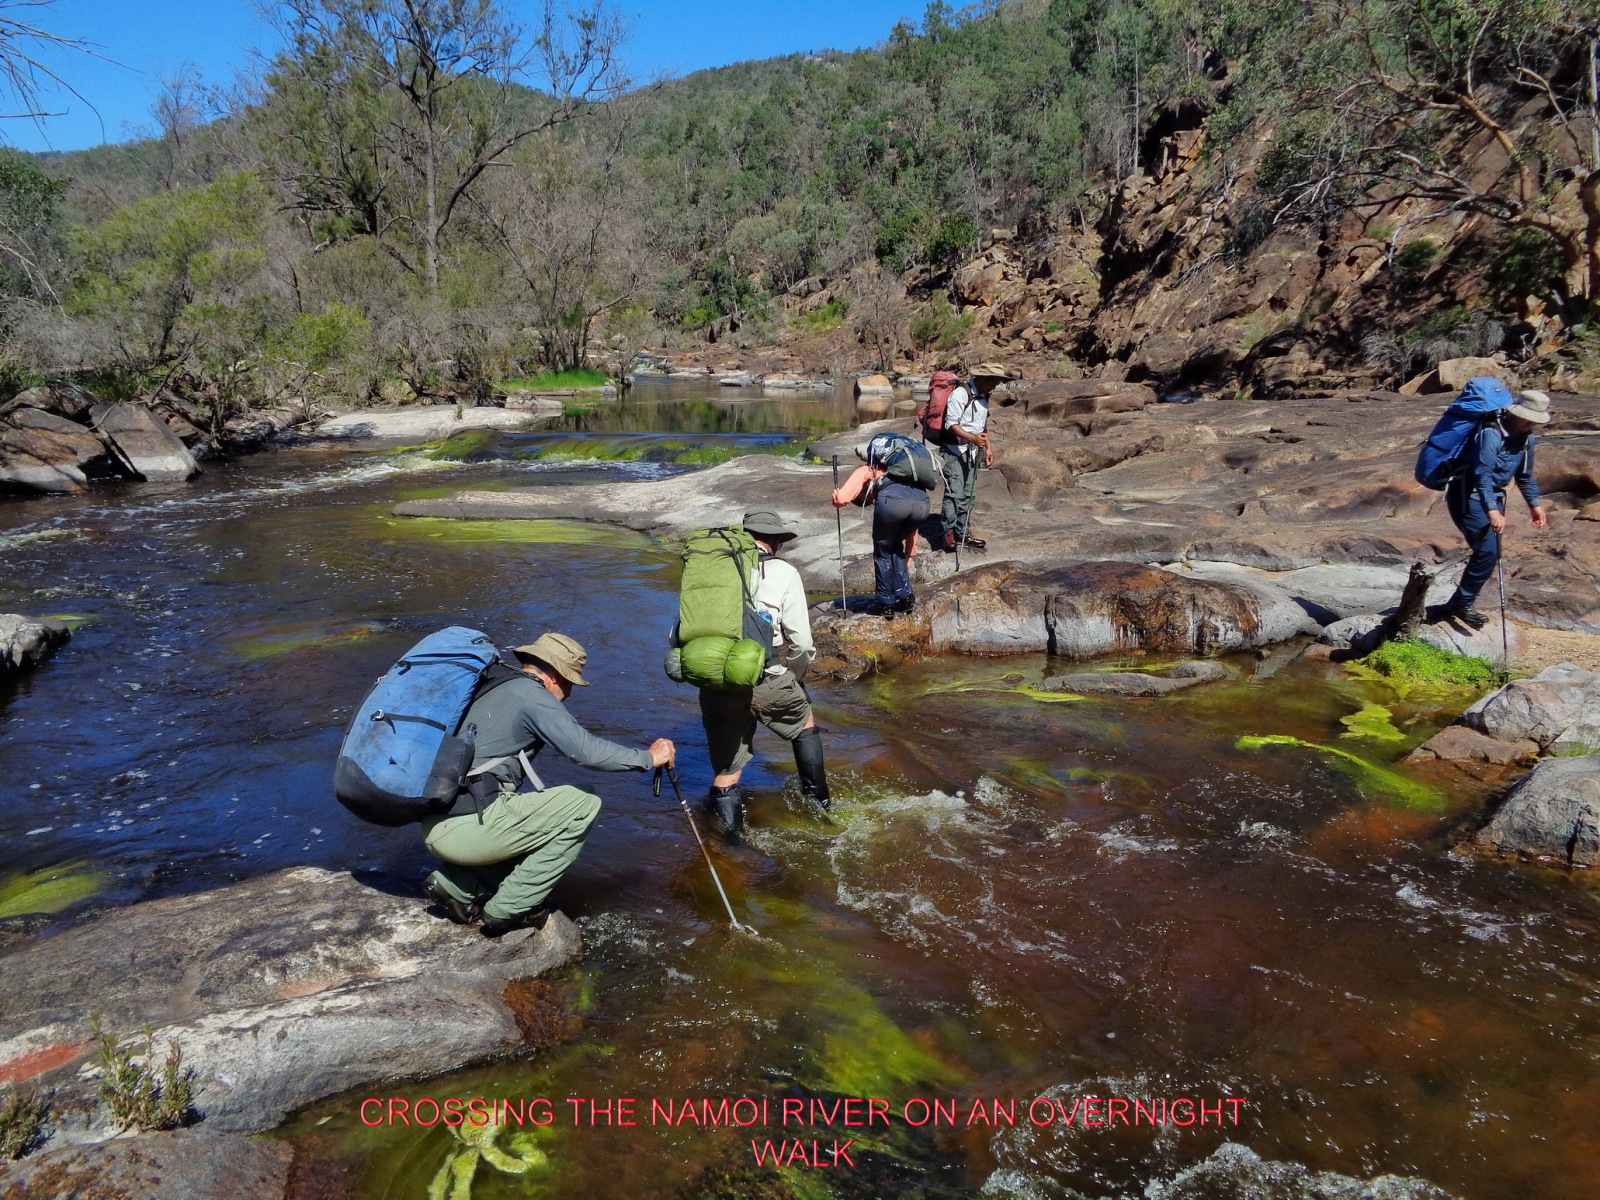 CROSSING THE NAMOI RIVER ON AN OVERNIGHT WALK